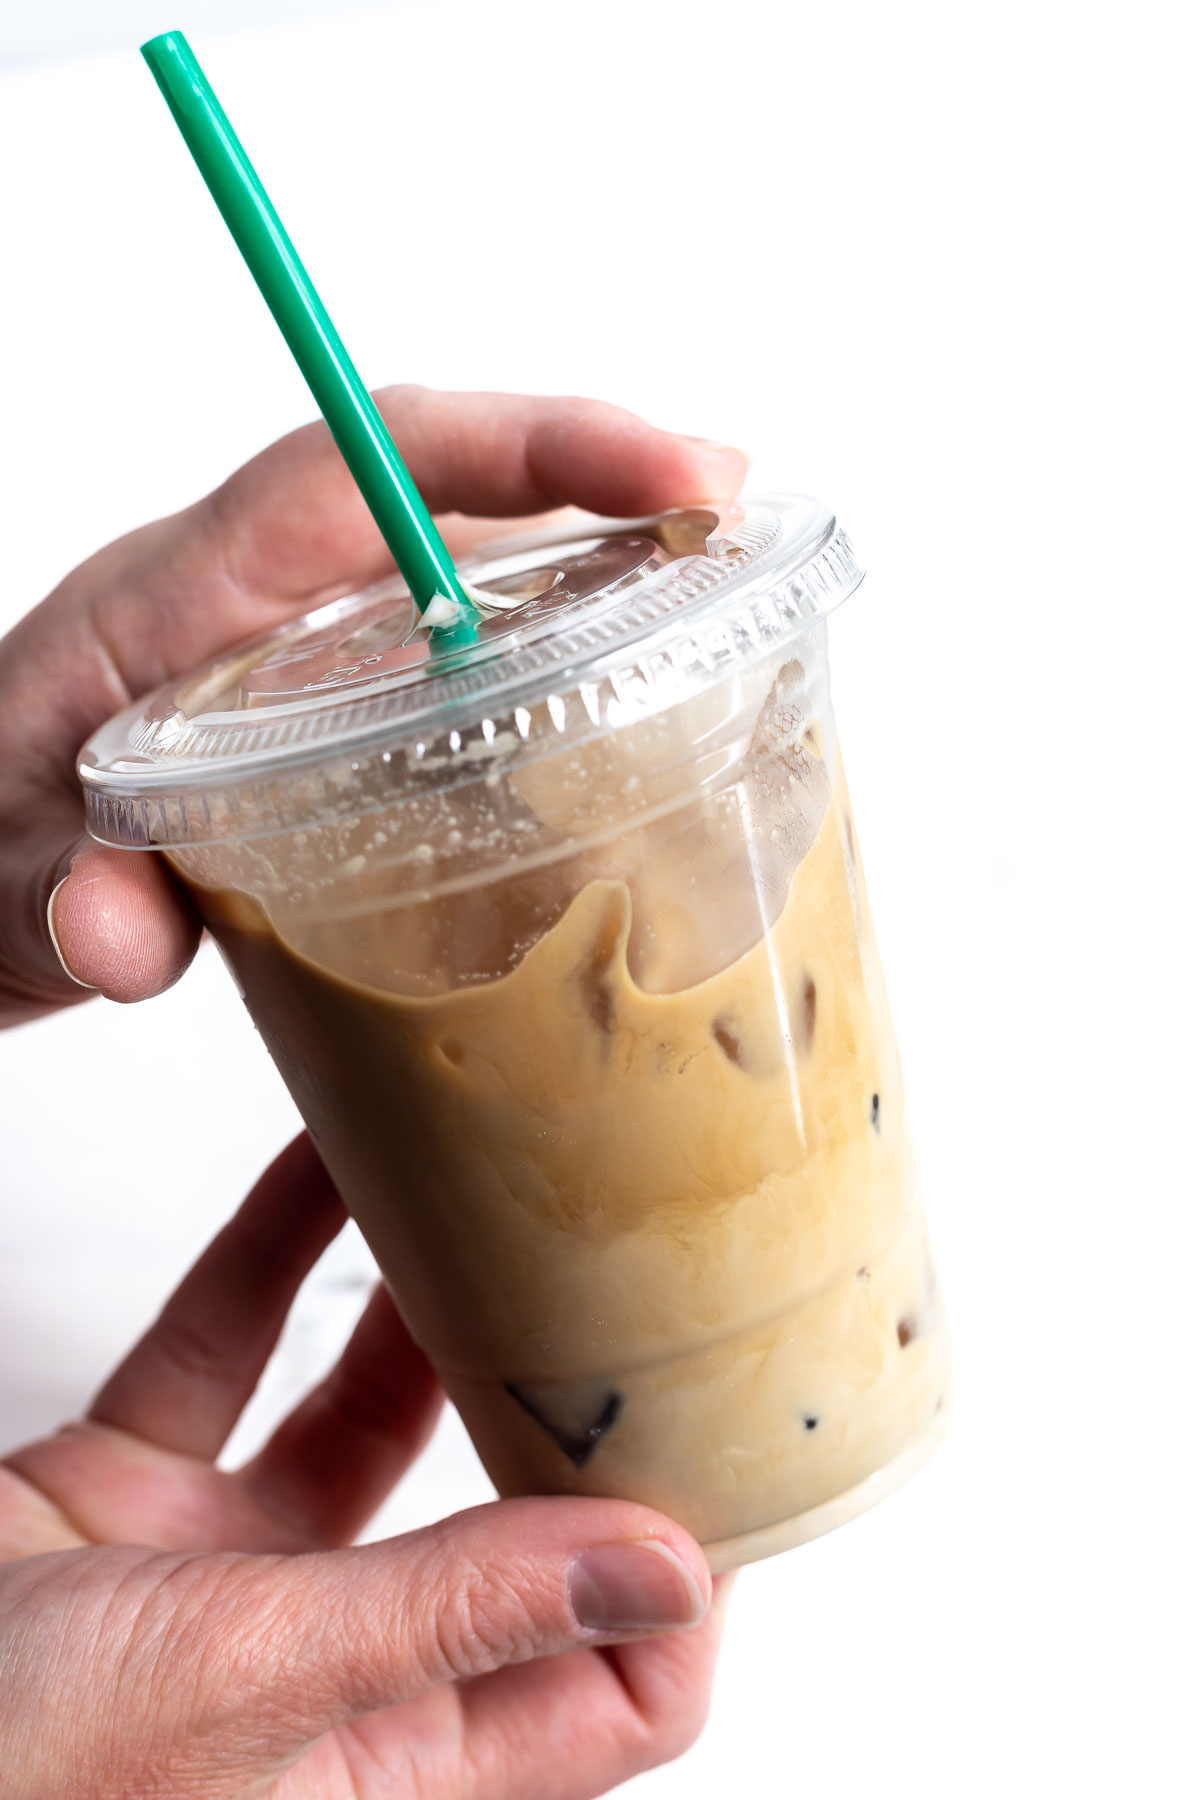 hands holding plastic cup filled with iced coffee